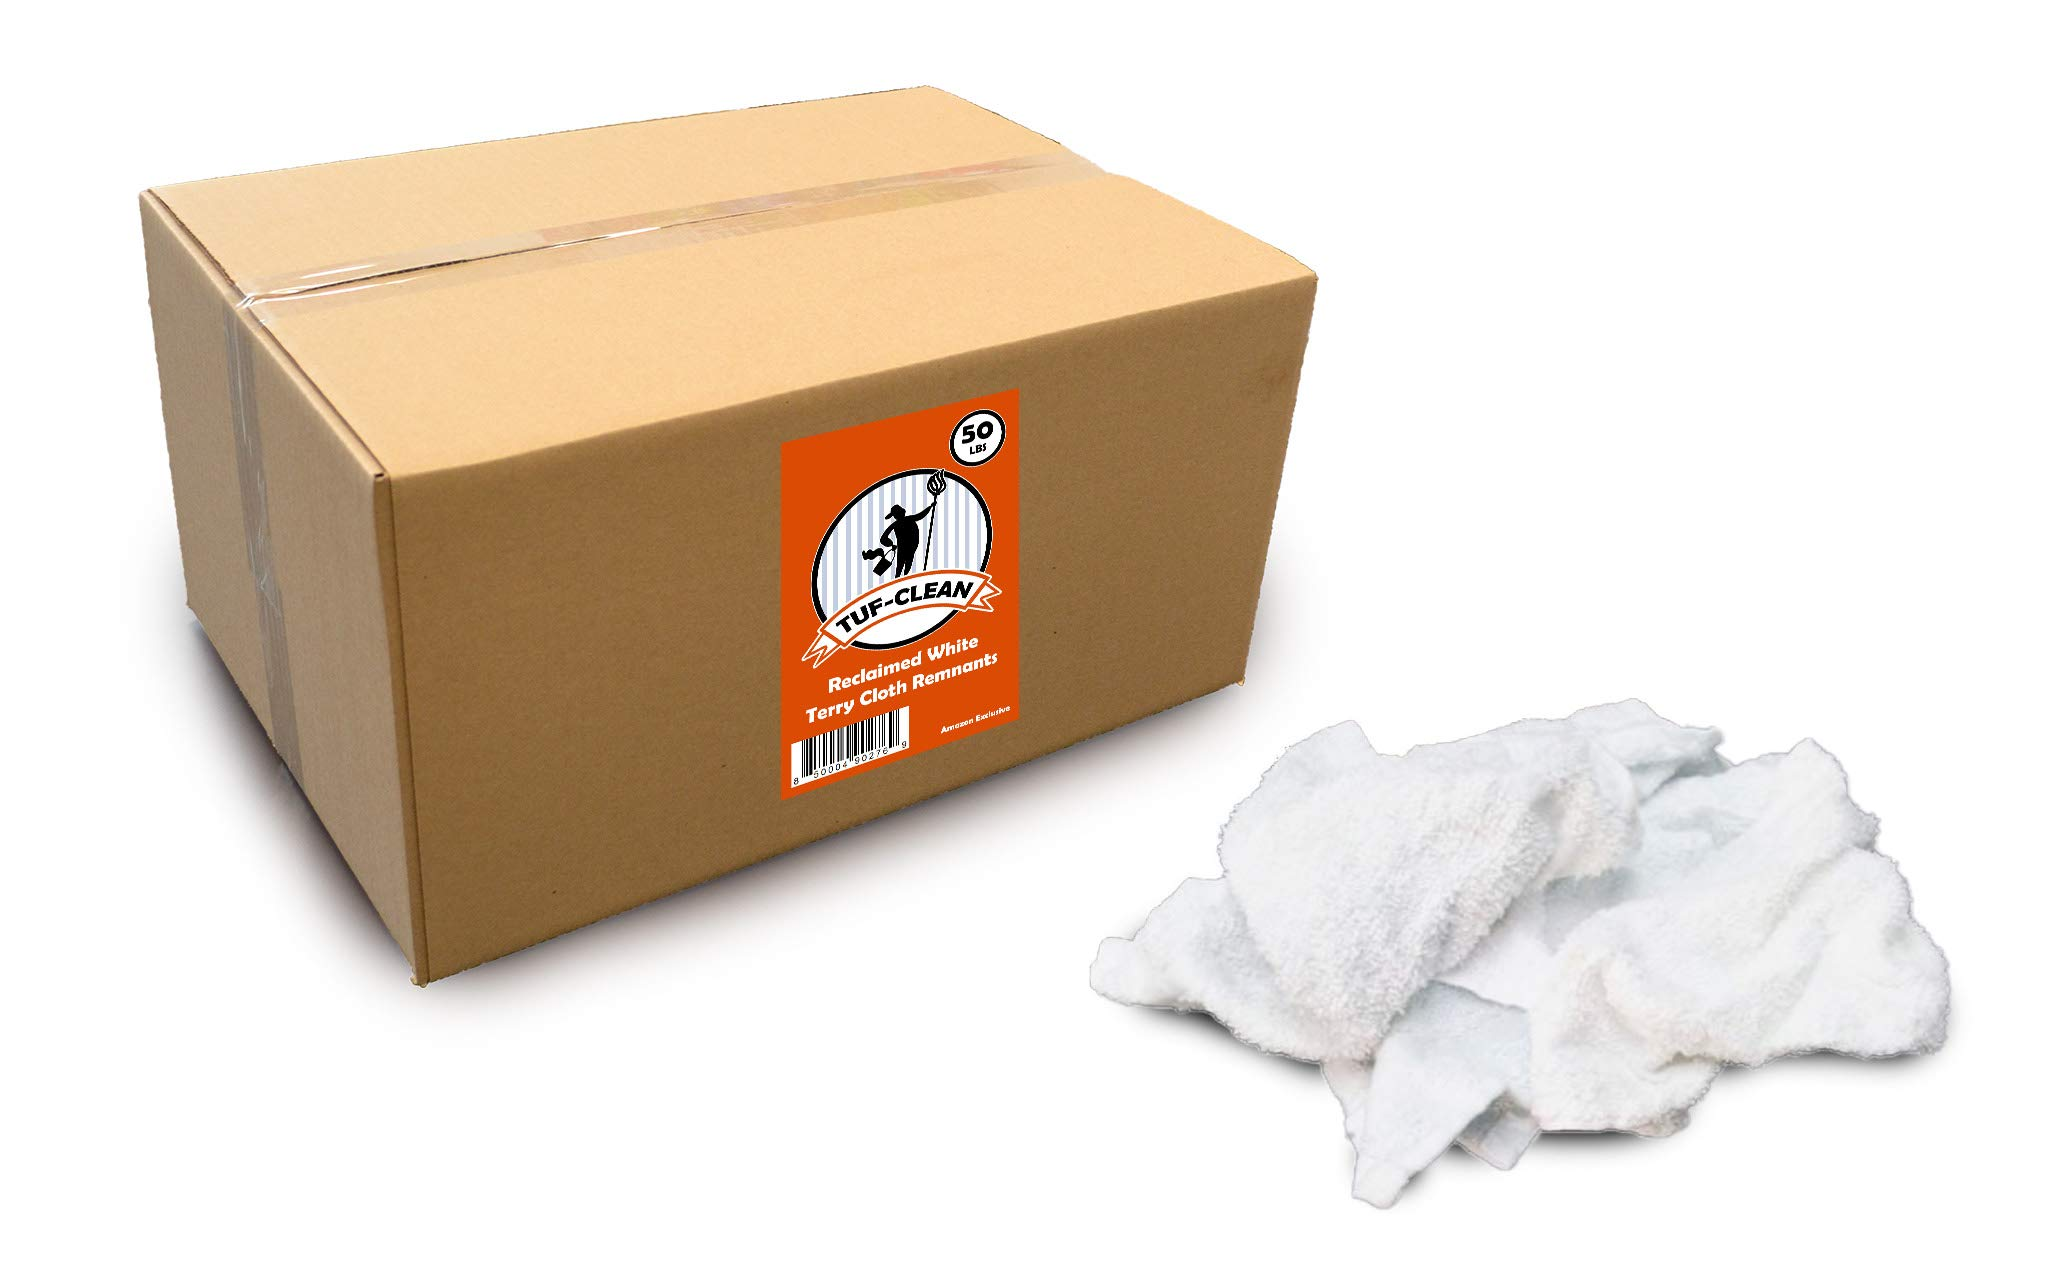 Tuf-Clean 99202 Terry Cloth Remnants/Rags, 100% Cotton, White, 50 lb Box